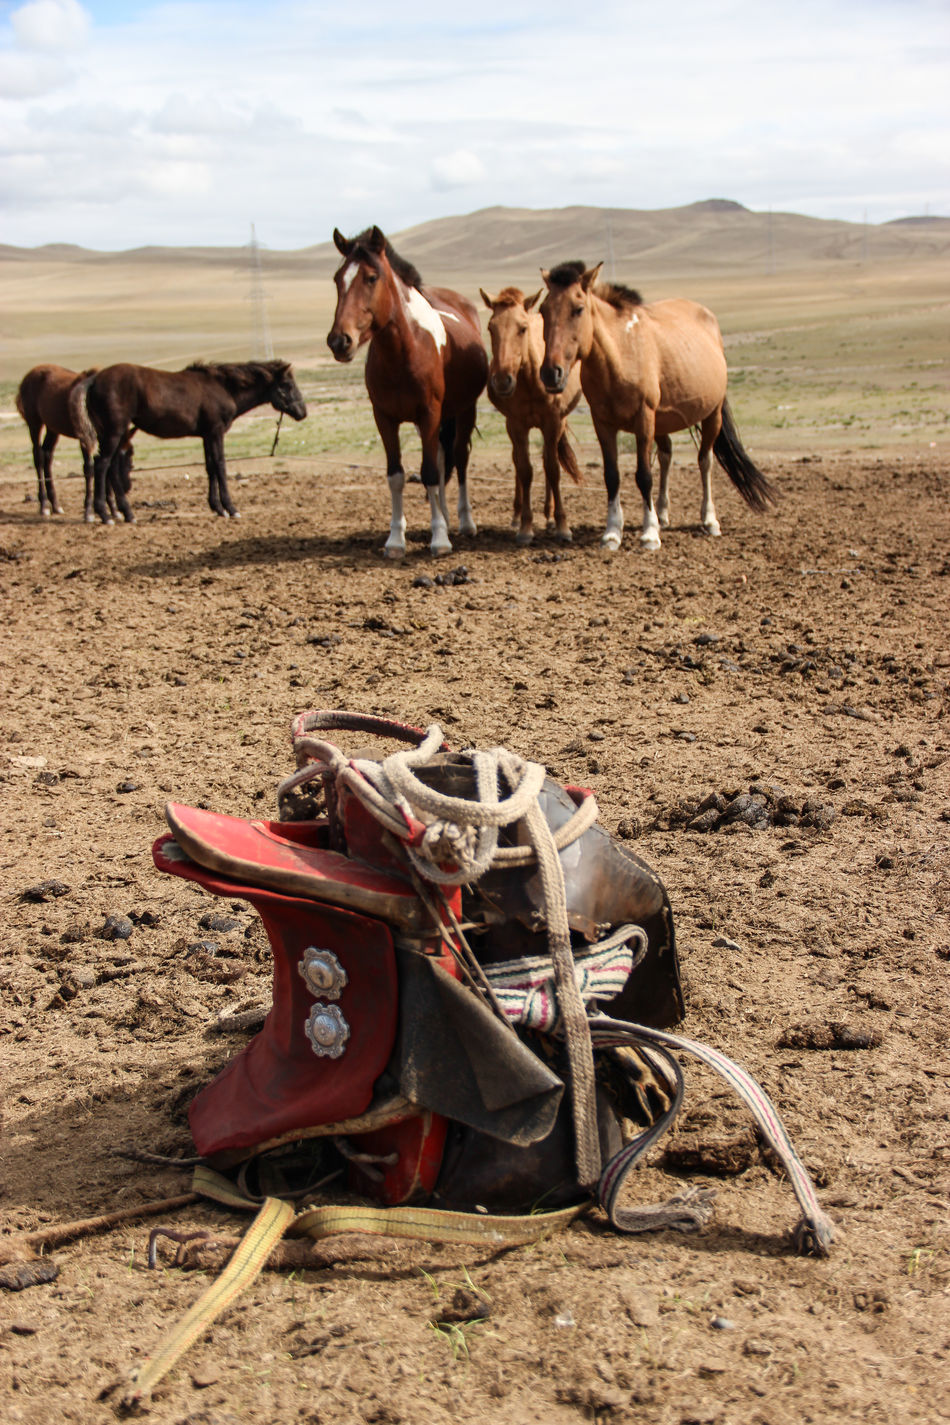 """""""mongolian saddle"""" Animal Animal Themes Animals In The Wild Brown Camel Cowboy Day Domestic Animals Equipment Farm Farm Life Hills Horse Horses Lieblingsteil Livestock Mammal Nature Nature No People Outdoor Outdoors Saddle Soil Wildlife"""